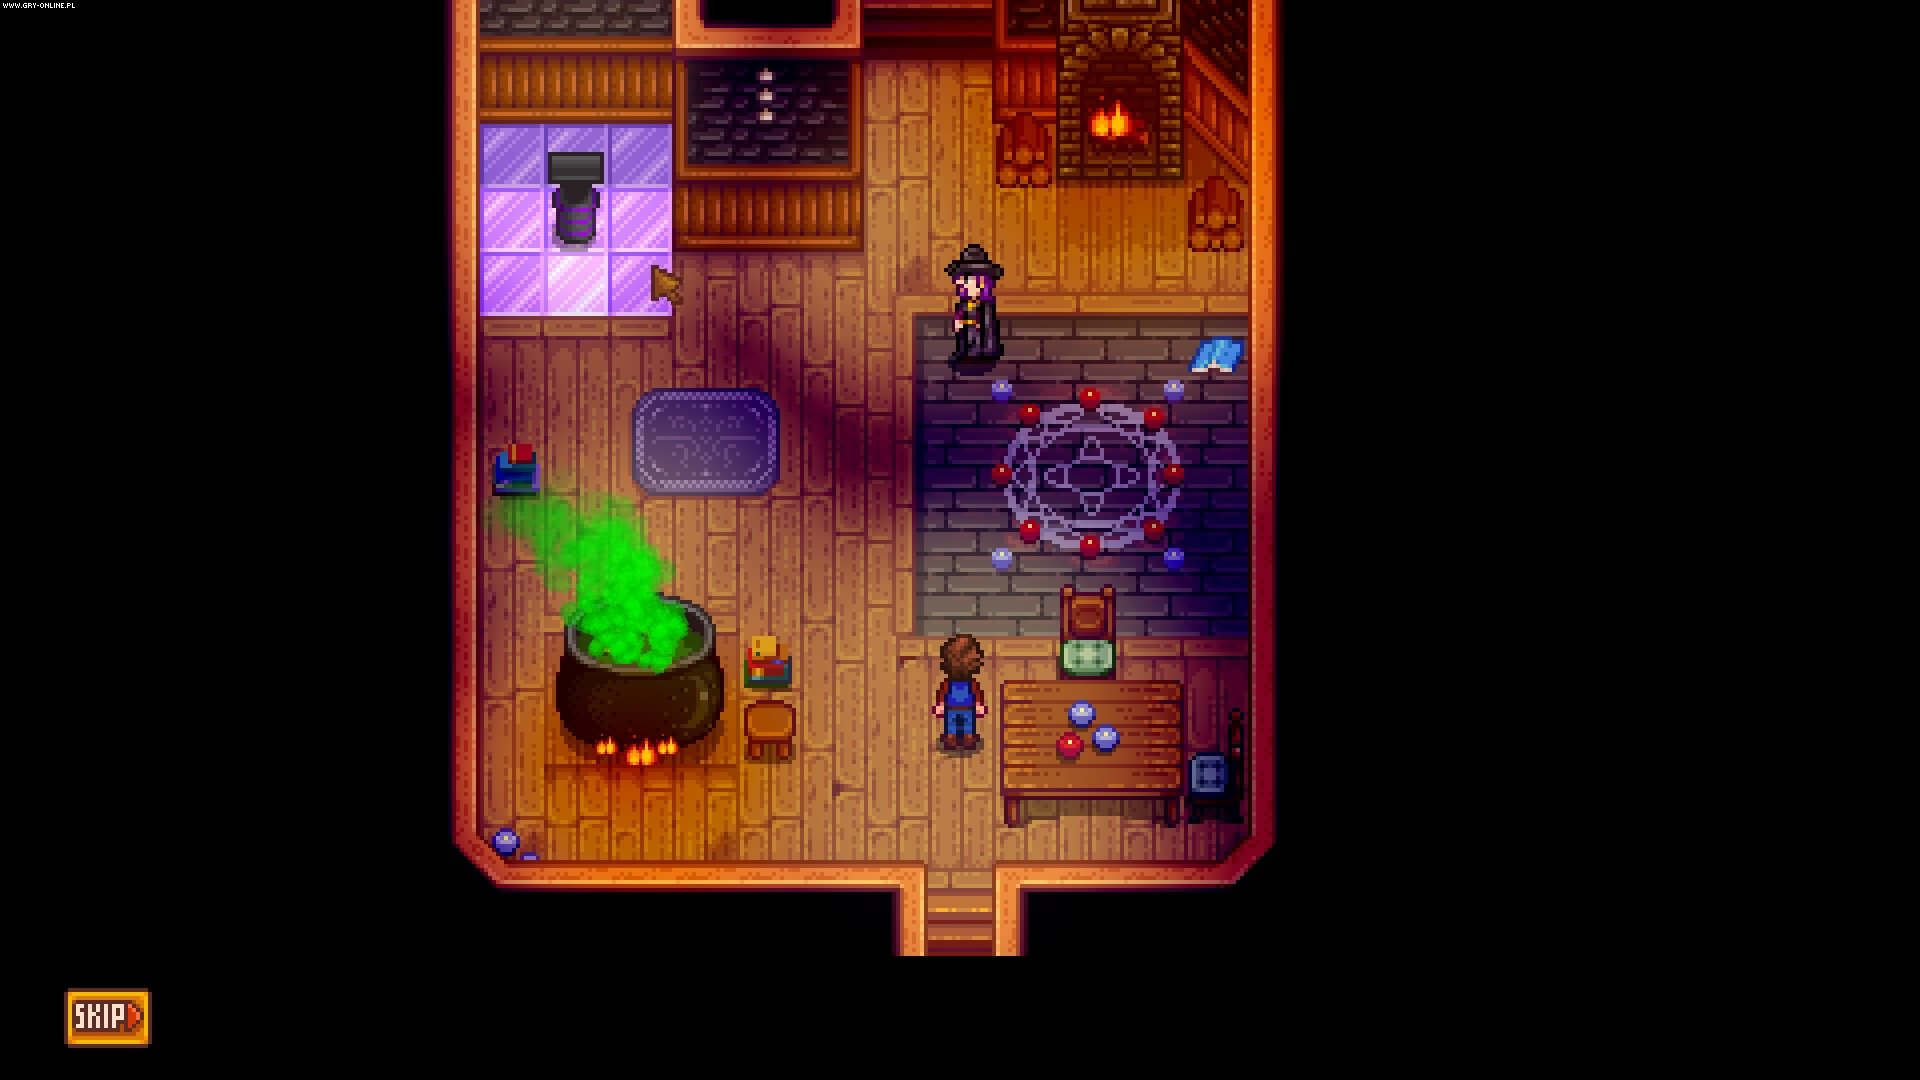 Stardew Valley PC, PSV, PS4, XONE, Switch Gry Screen 4/28, Concerned Ape, Chucklefish